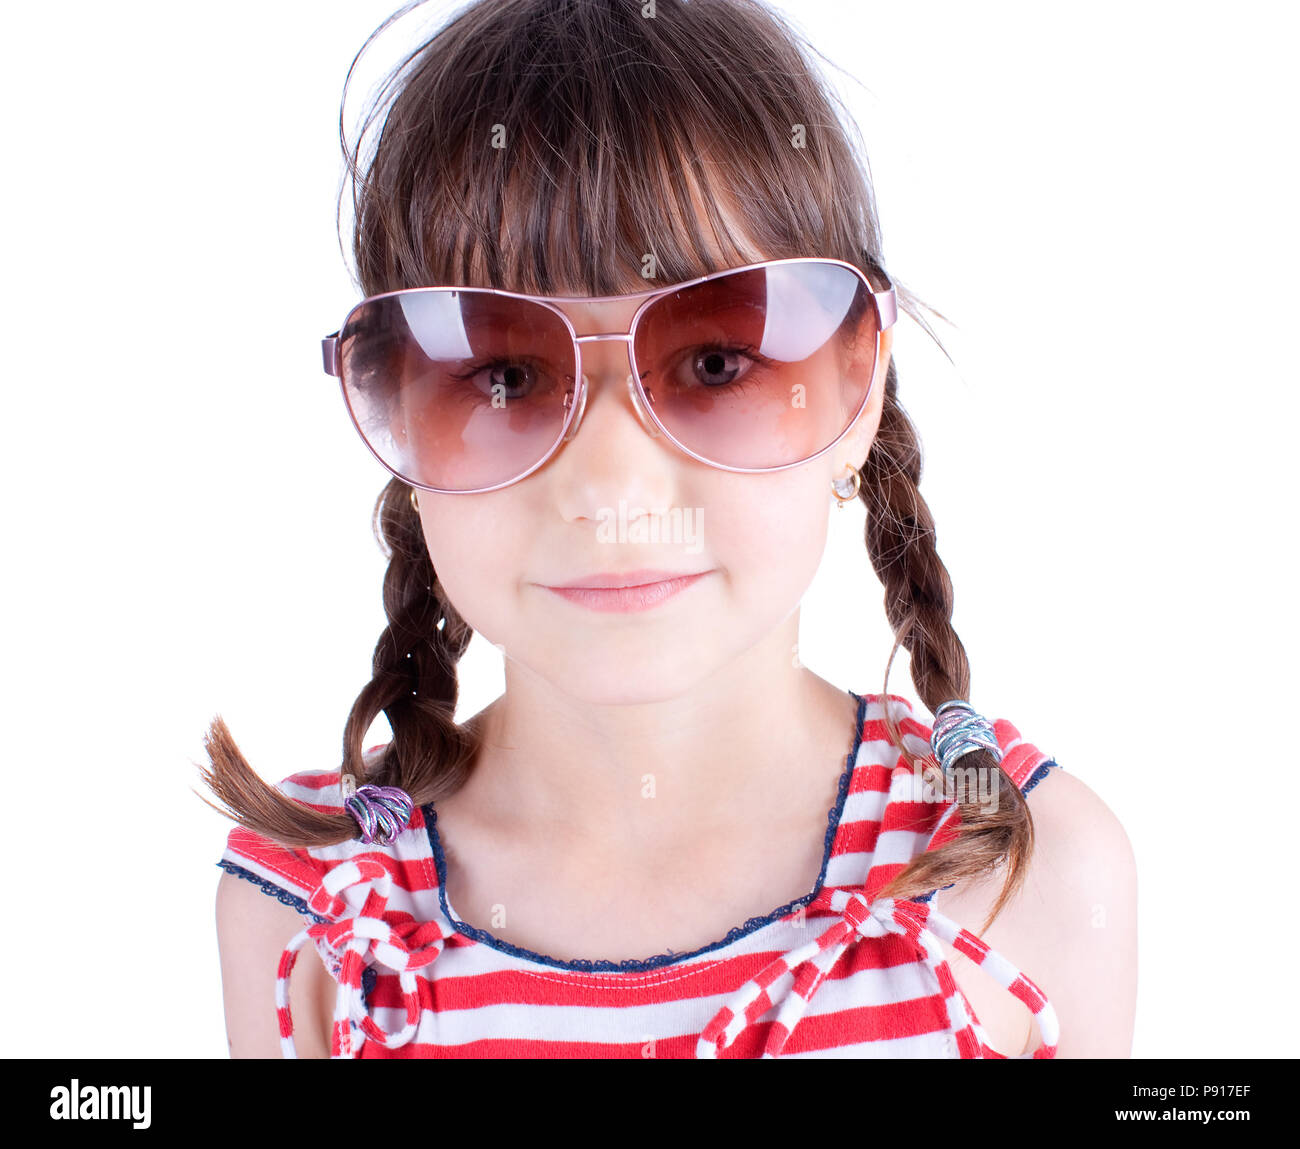 f40d5521a611 Cute little girl with sunglasses posing